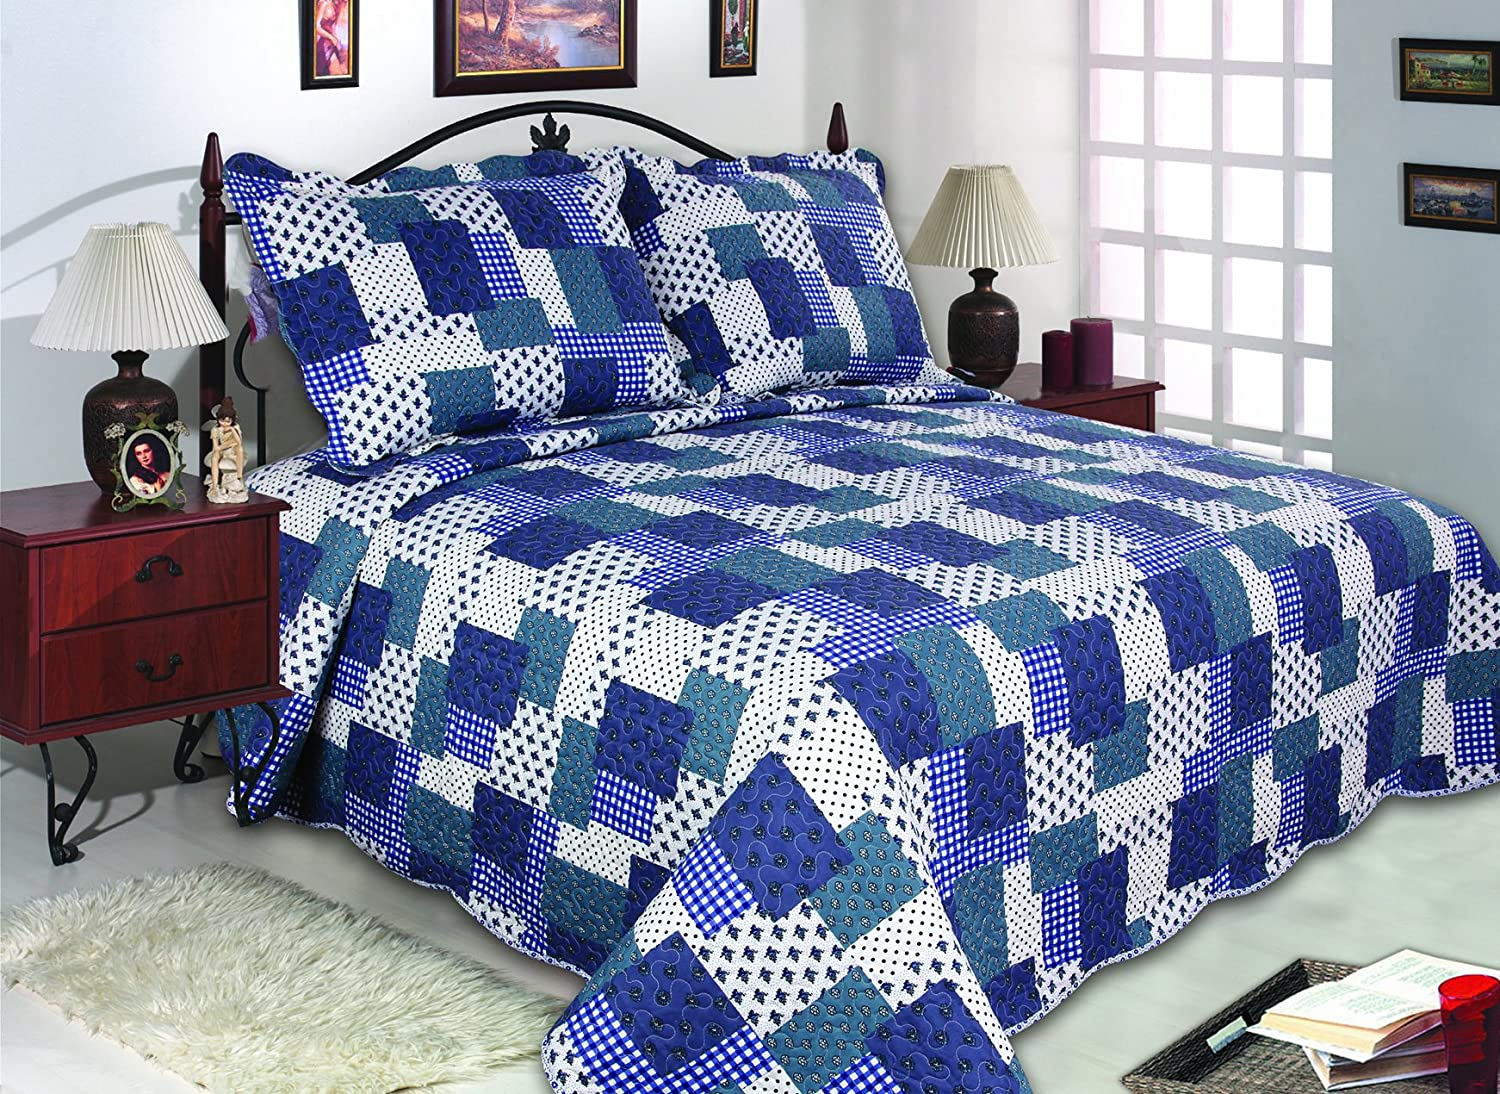 2-Piece Reversible Bedspread, Coverlet, Quilt Set